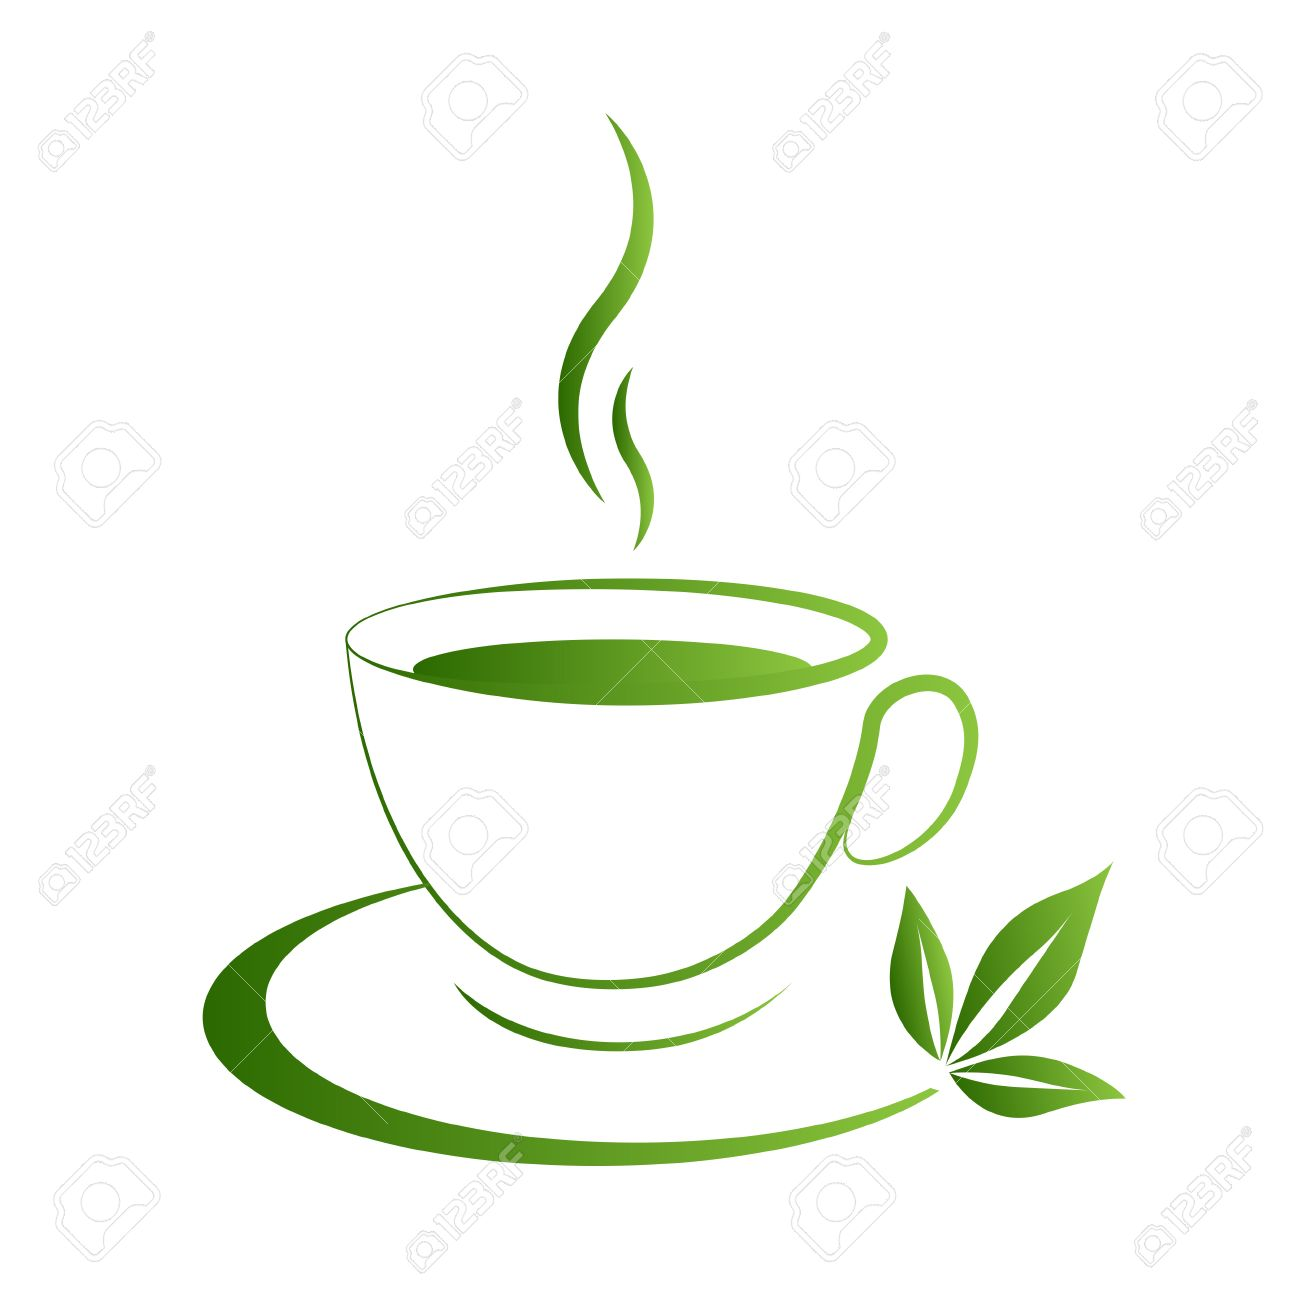 tea cup icon green grad on a white background royalty free cliparts rh 123rf com tea cup vector art tea cup vector png